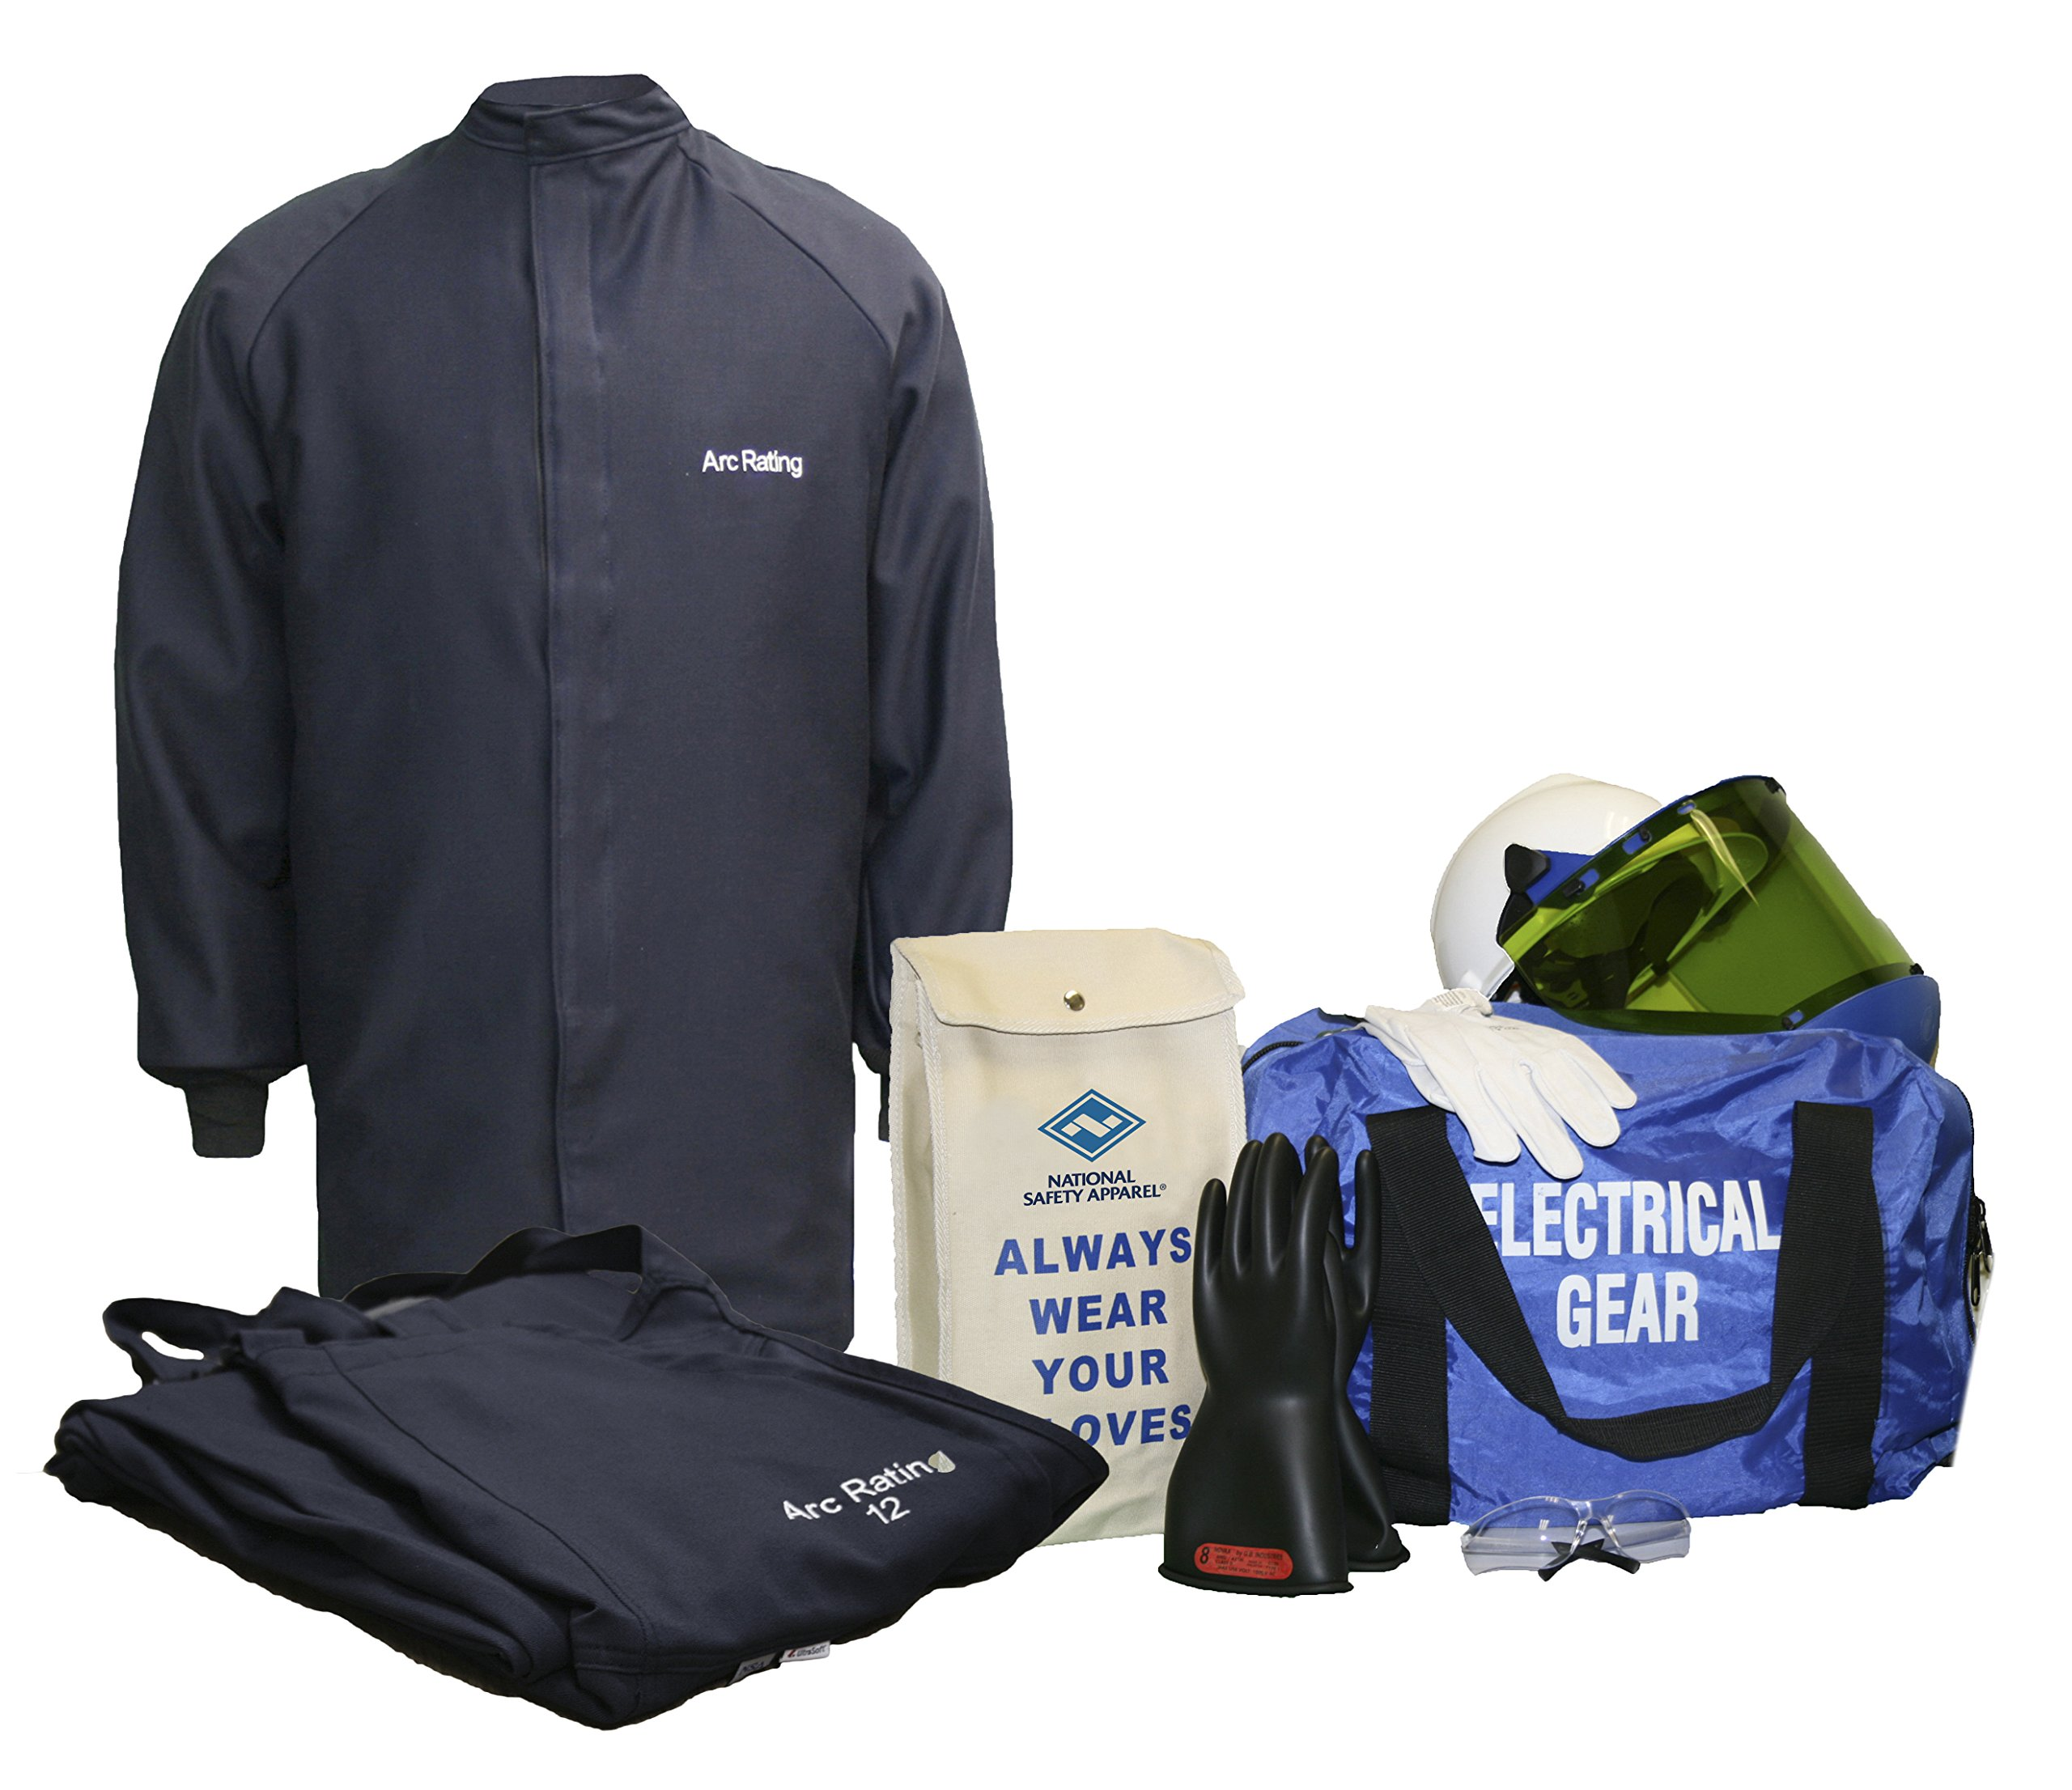 National Safety Apparel KIT2SC112X10 ArcGuard UltraSoft Arc Flash Kit with Short Coat and Bib Overall, 12 Calorie, XX-Large, Size 10, Navy